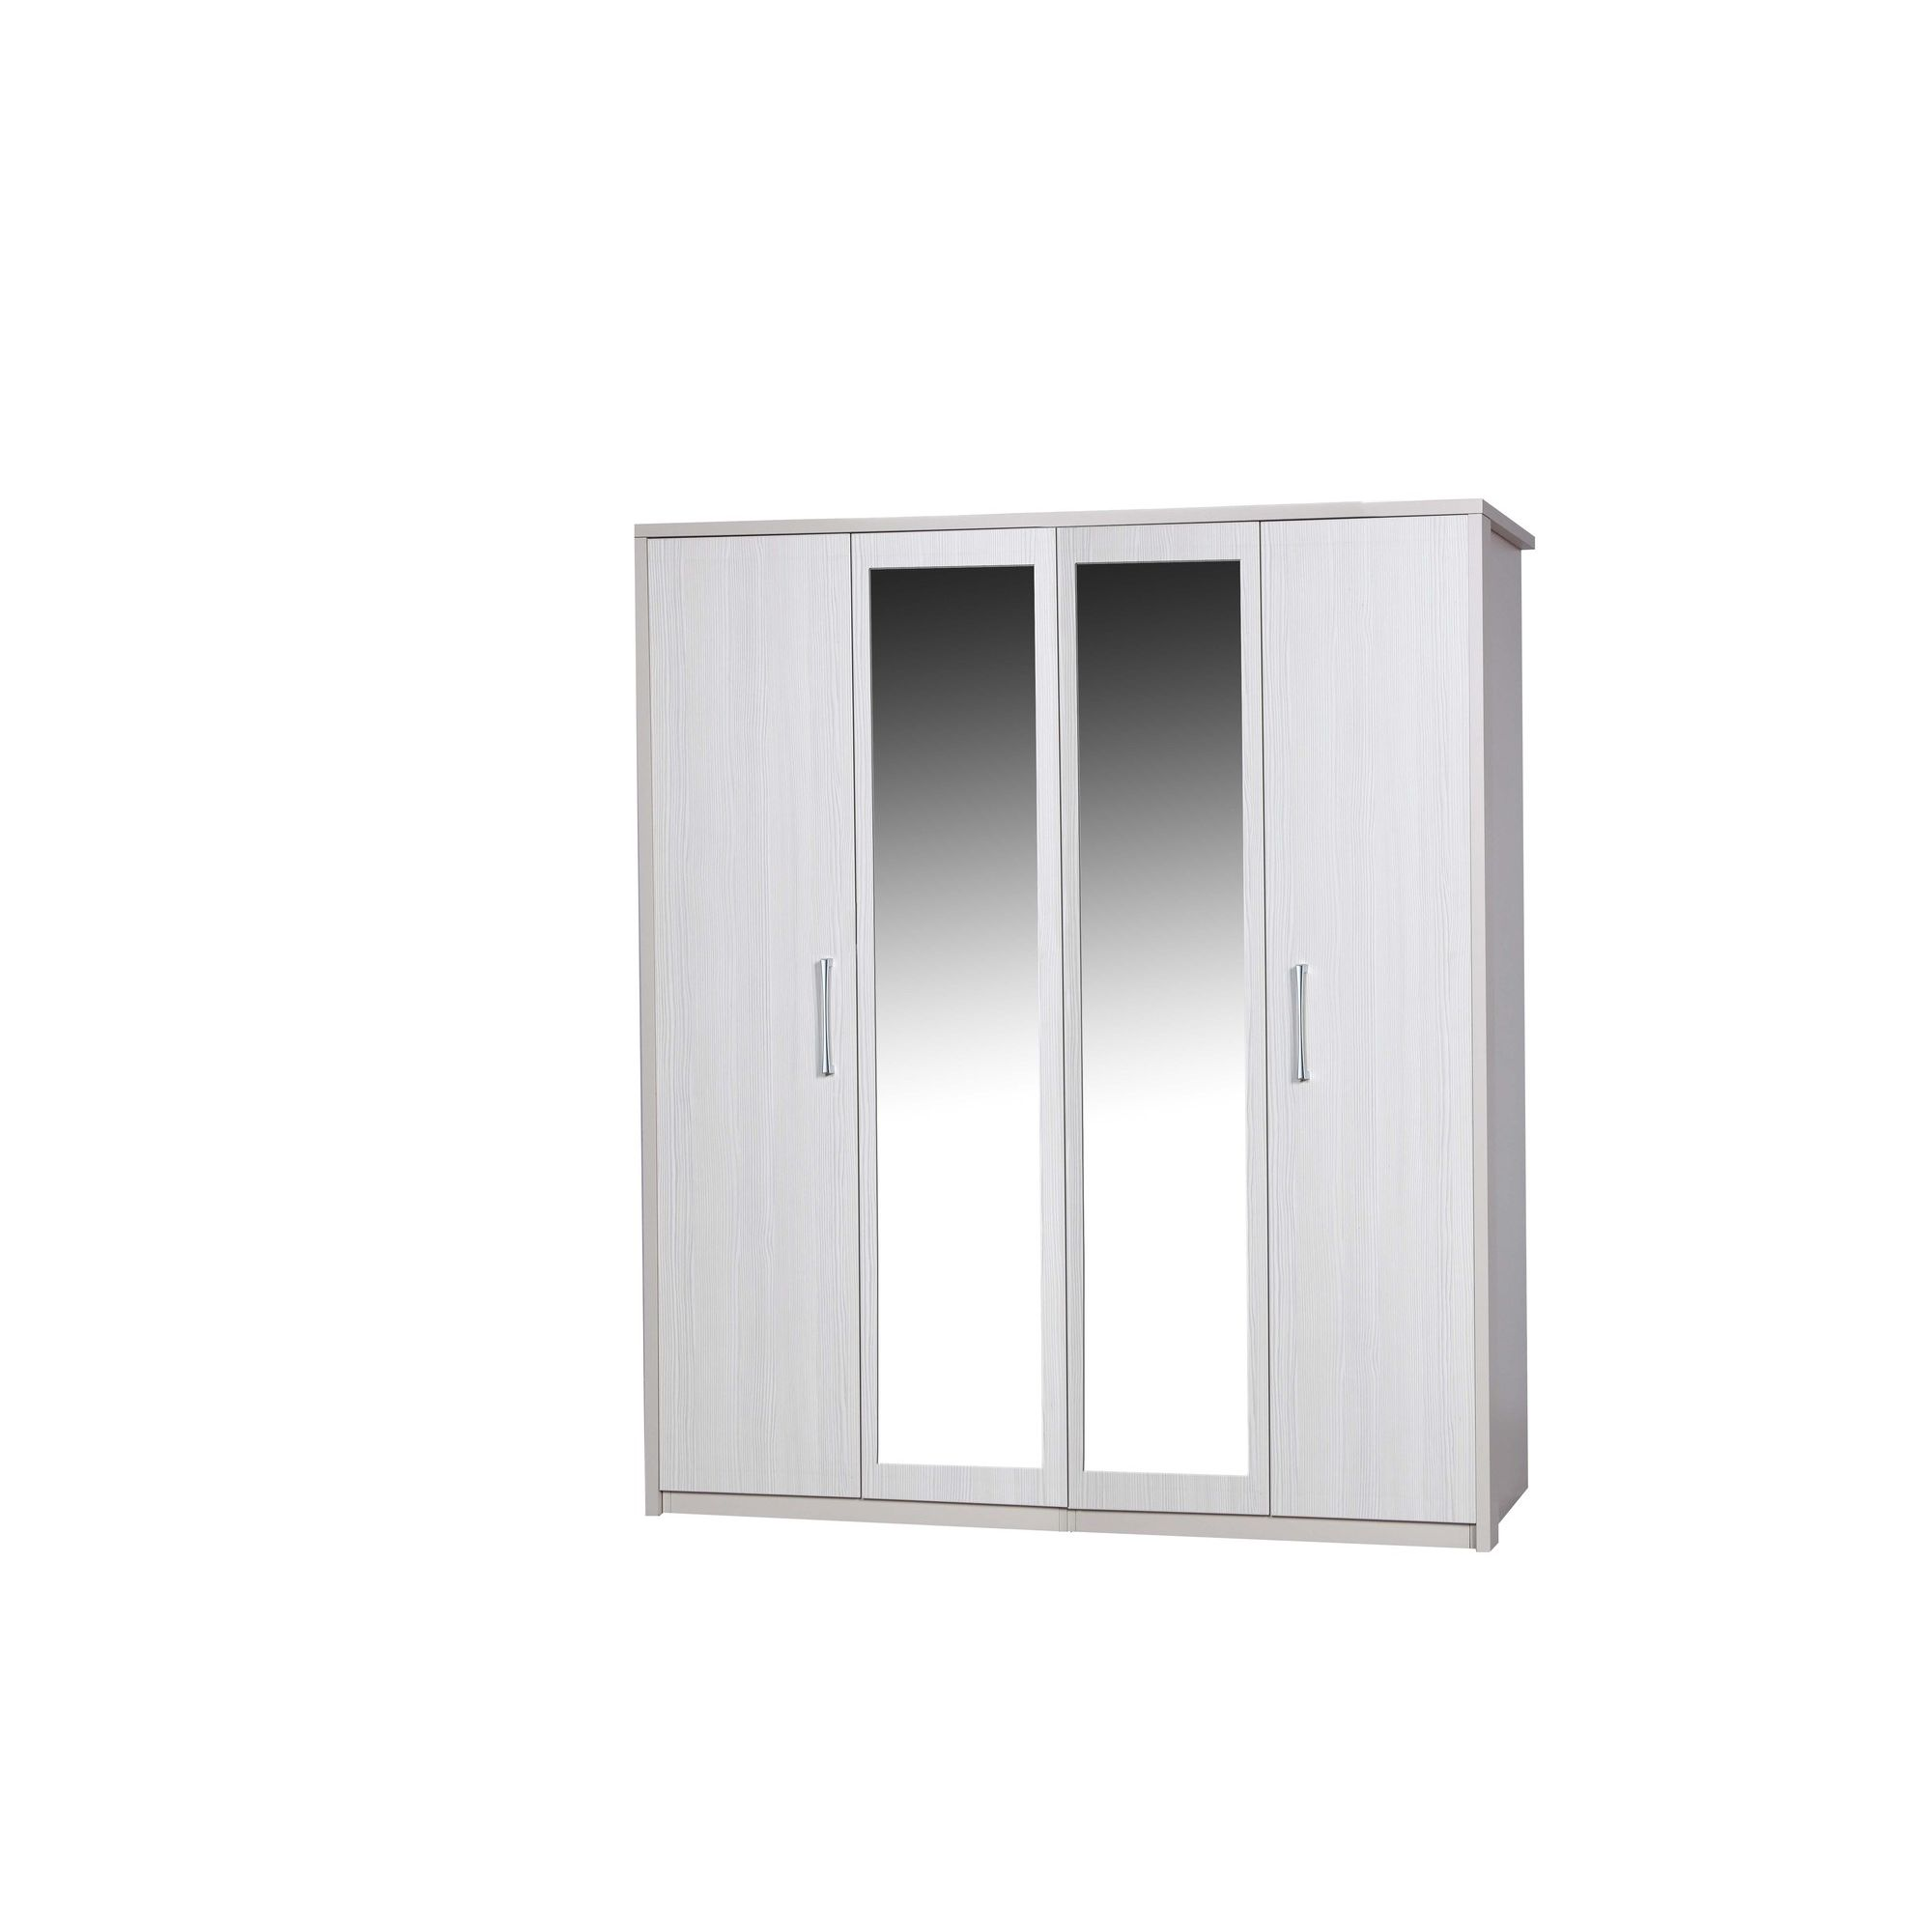 Alto Furniture Avola 4 Door Wardrobe with Mirror - Grey Carcass With White Avola at Tesco Direct